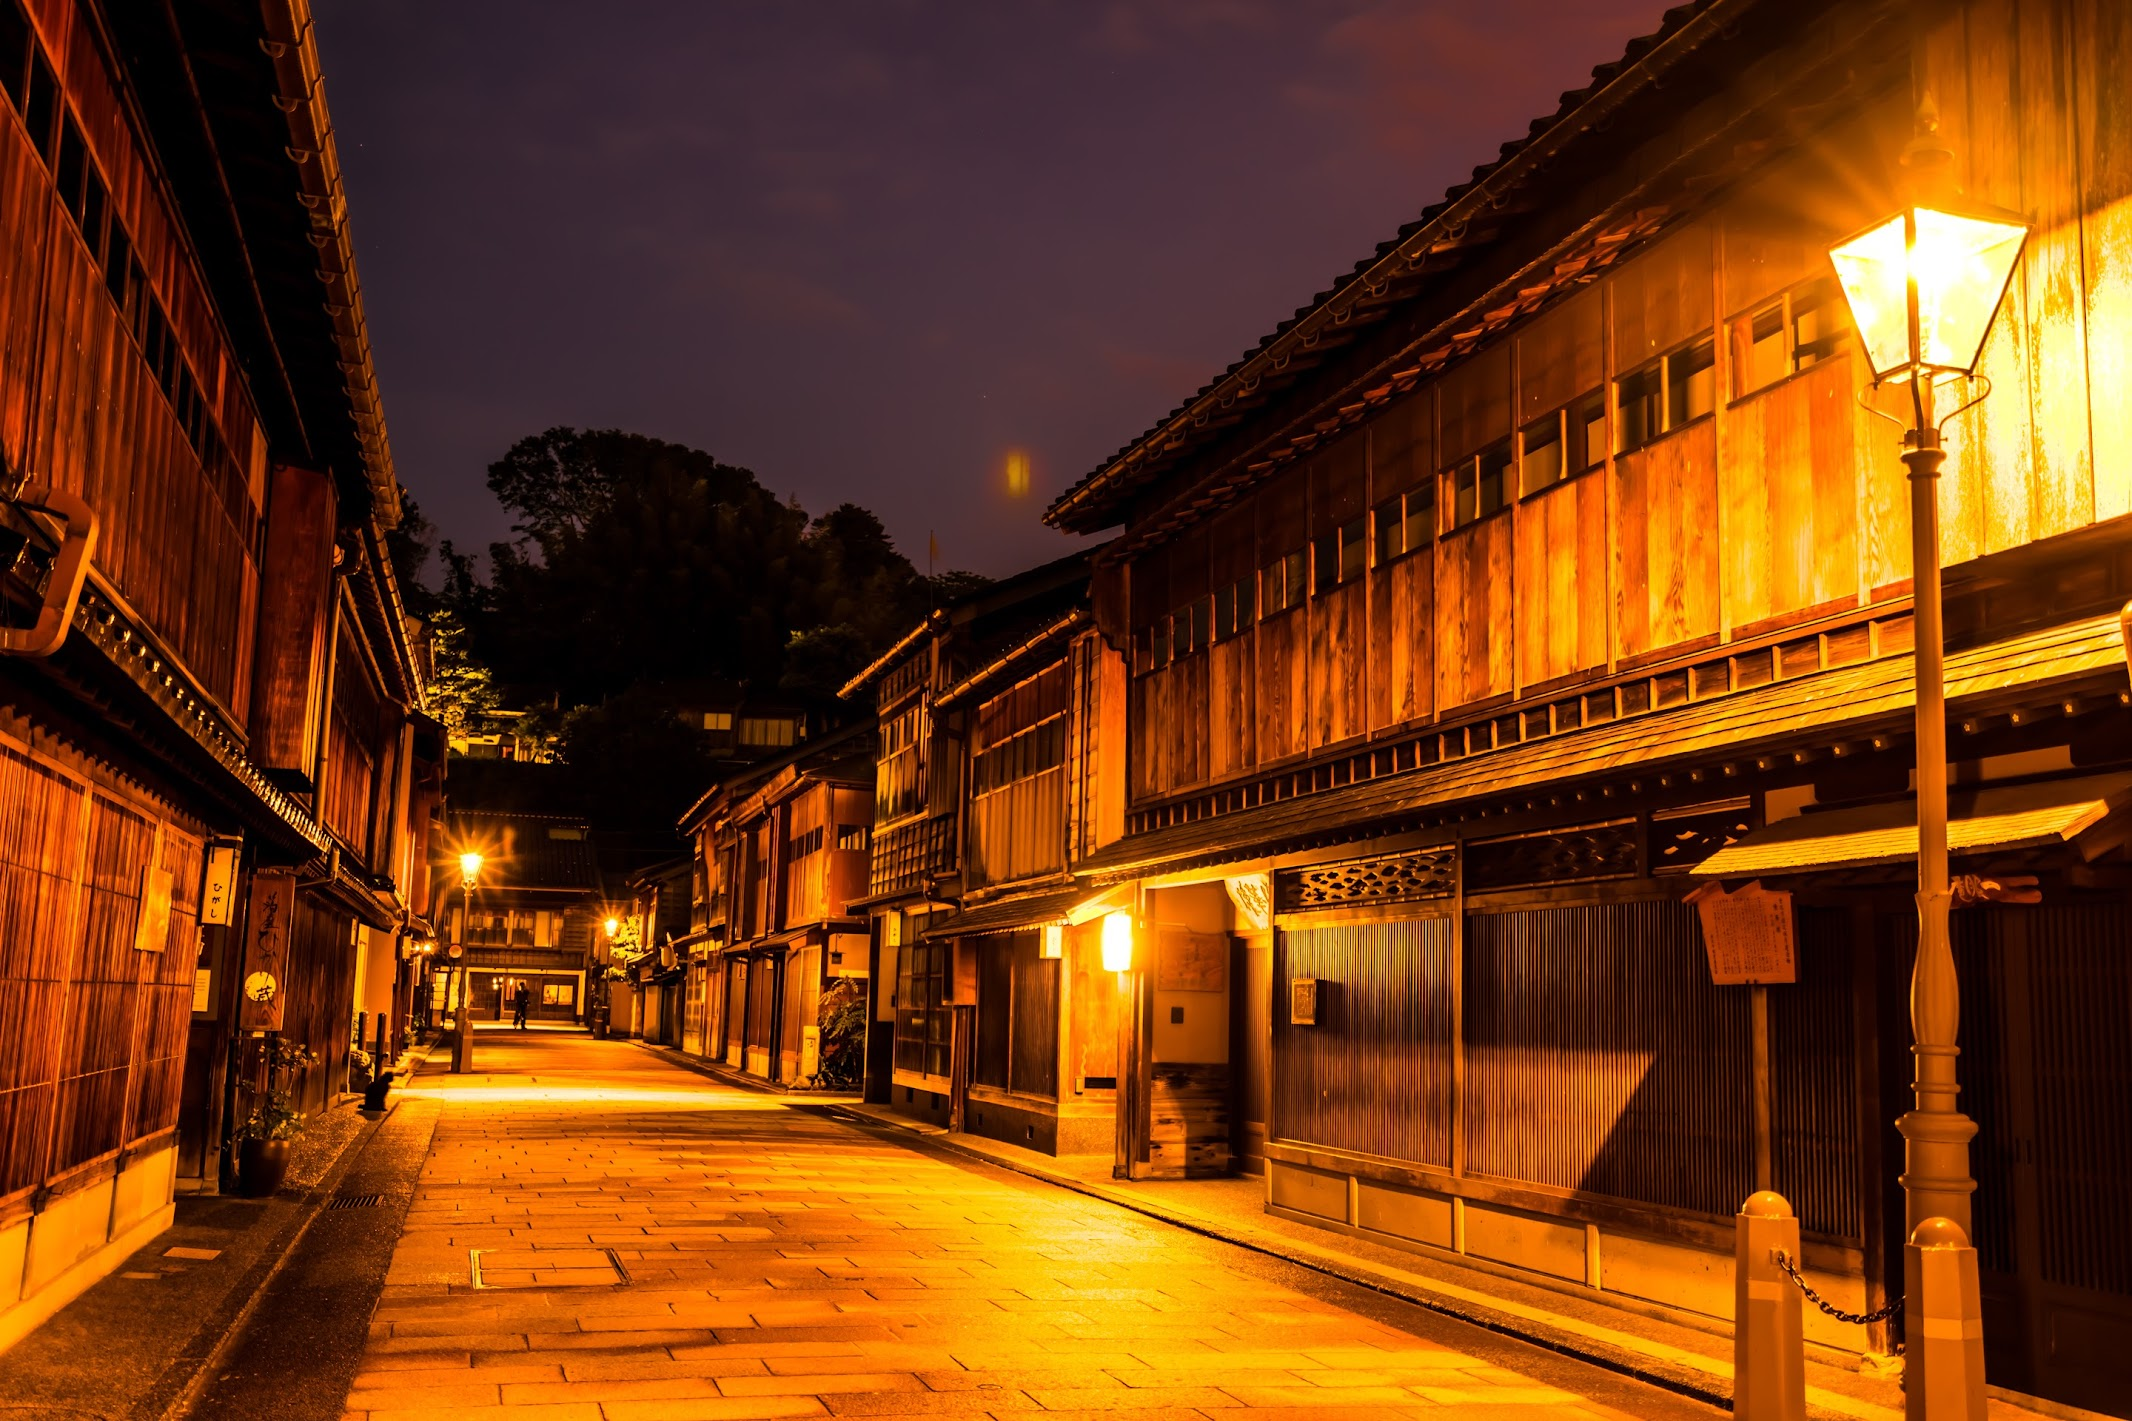 Kanazawa Higashi Chaya District Light-up3